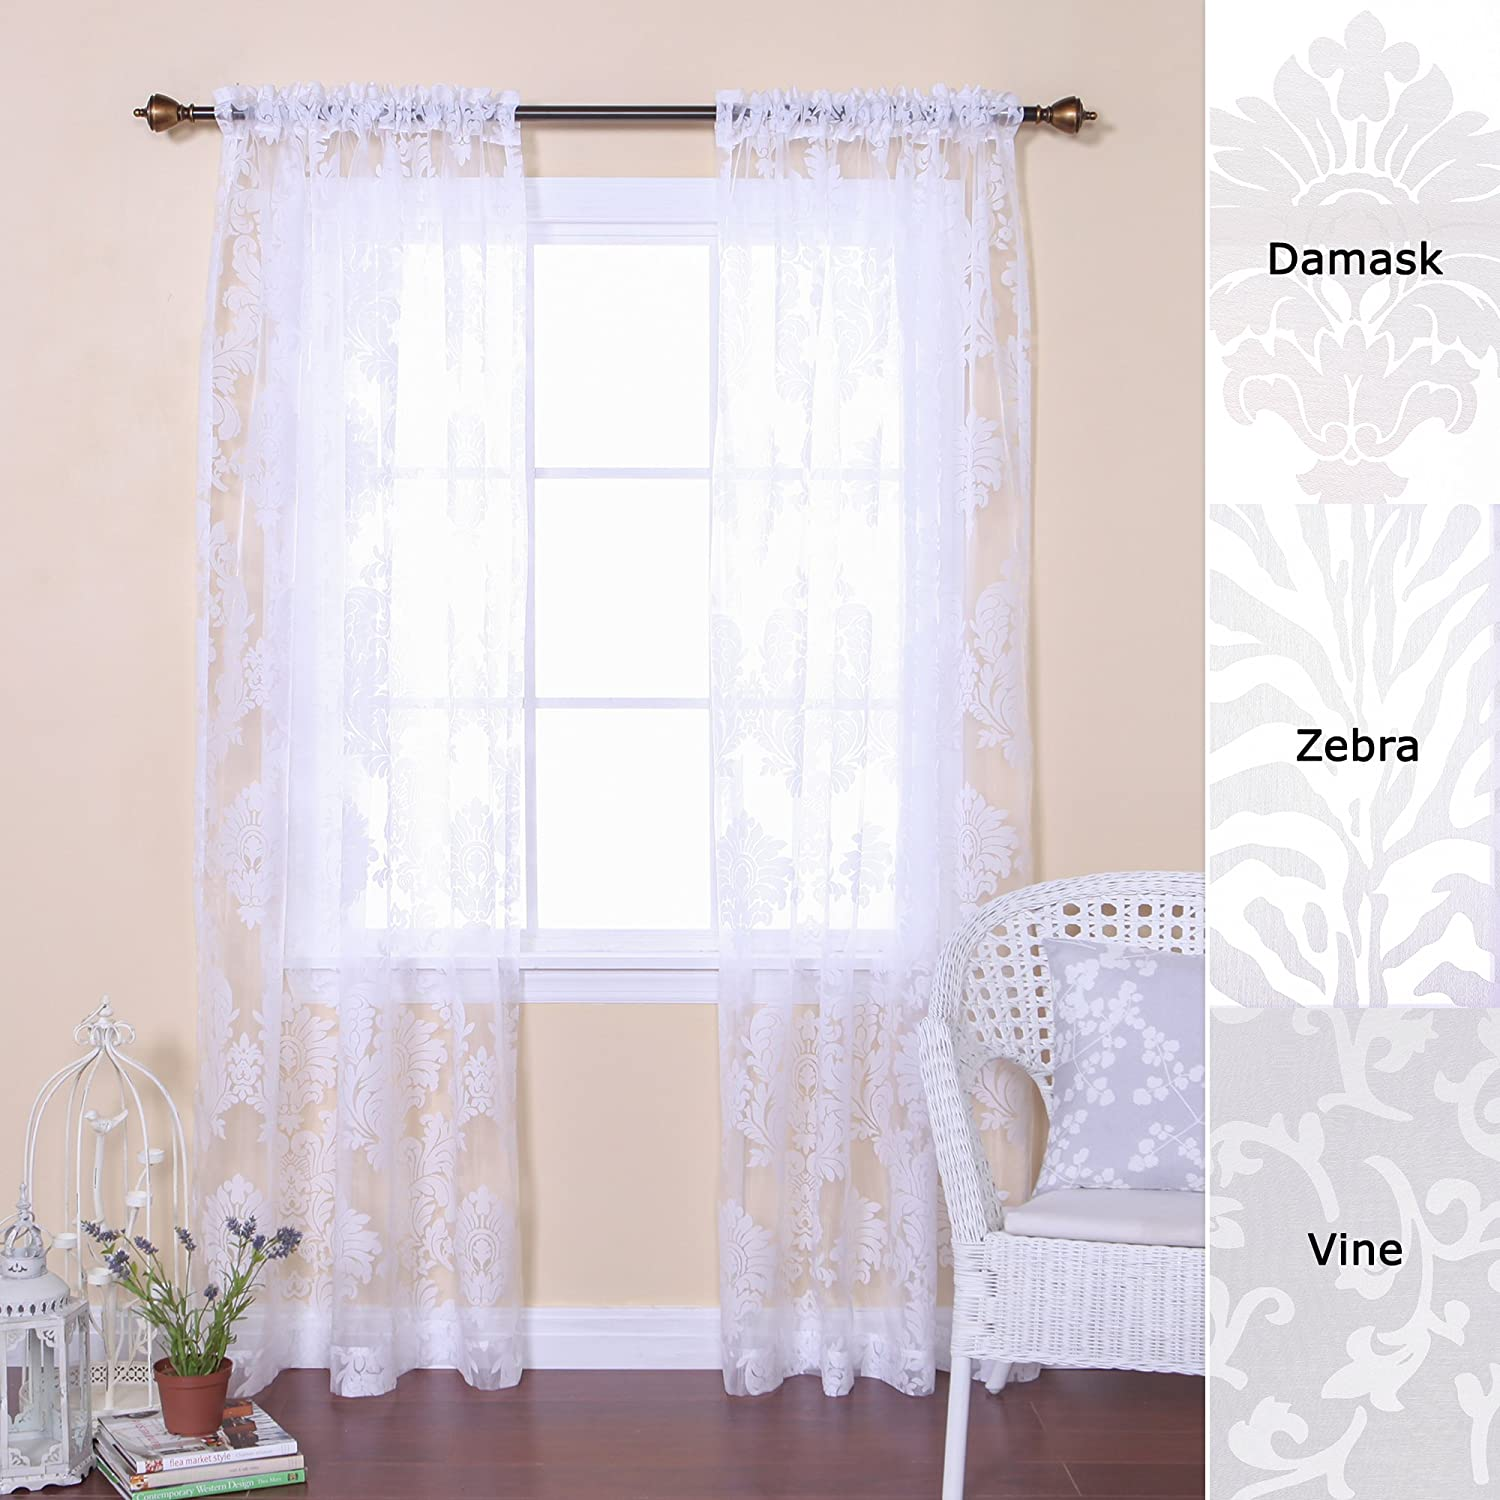 top best trenton shopping curtains great vine deals window pinterest grommet panels curtain on overstock images panel